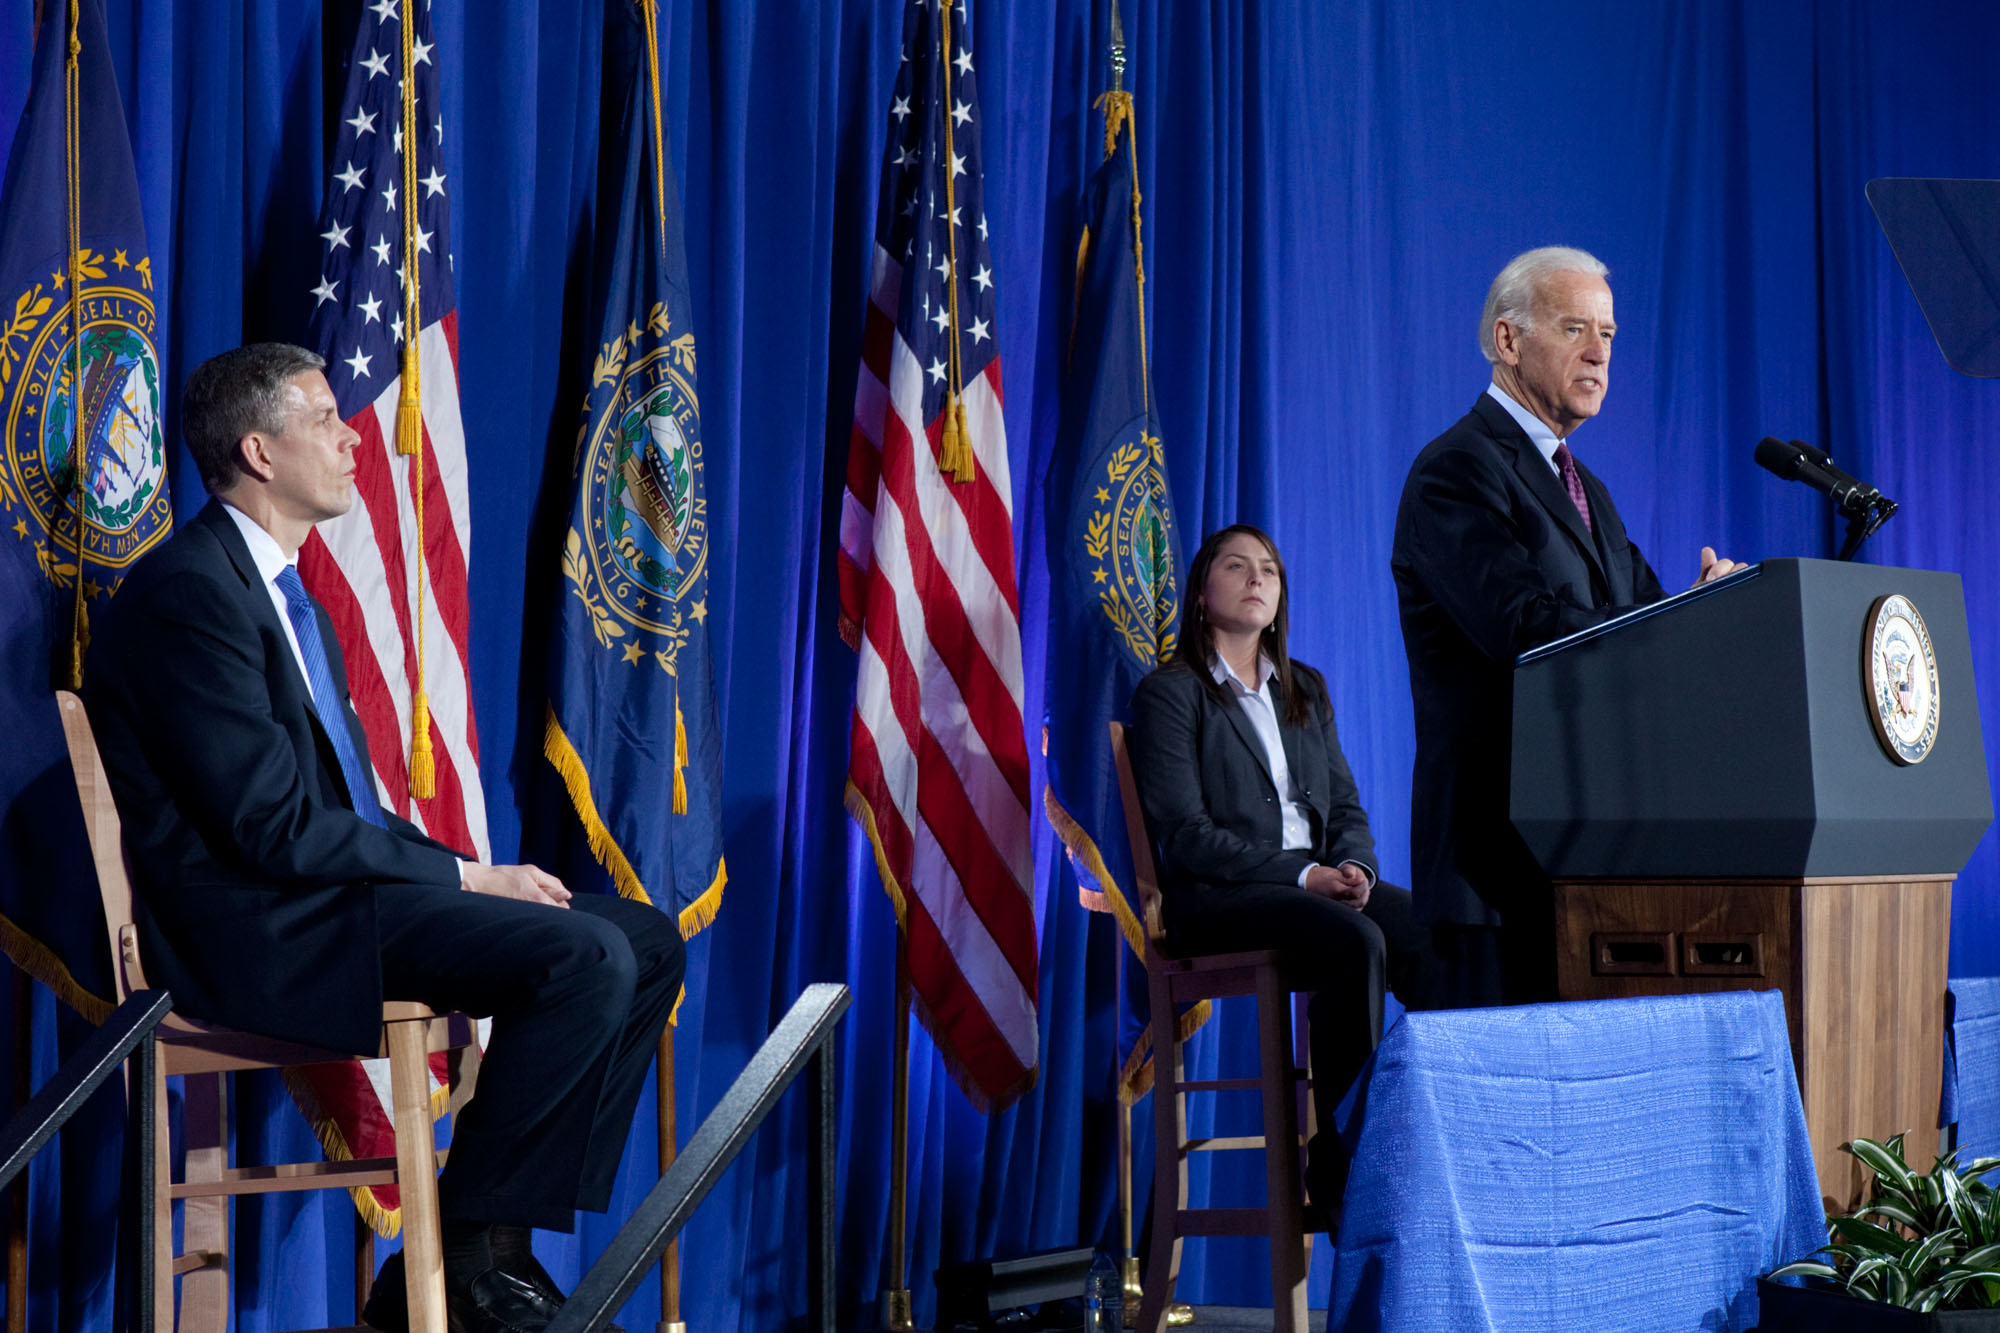 Vice President Joe Biden at University of New Hampshire